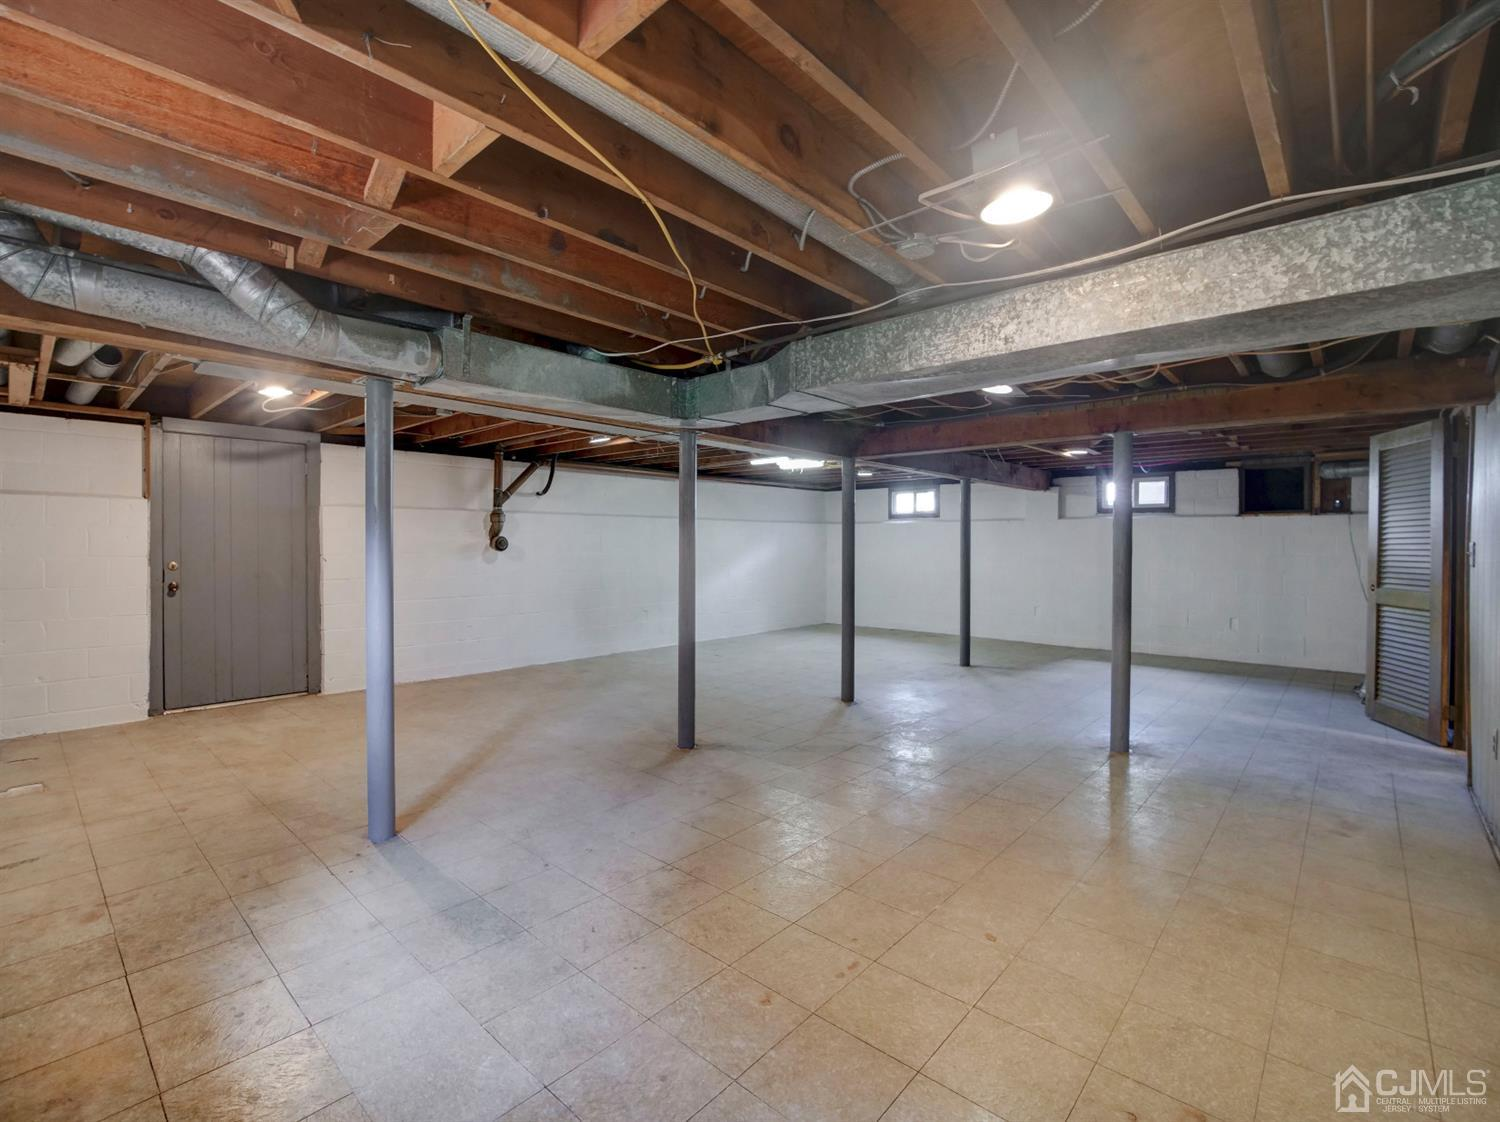 Full huge basement with outside access. This picture shows only about 60% of the basement area.  Basement has a older fully func